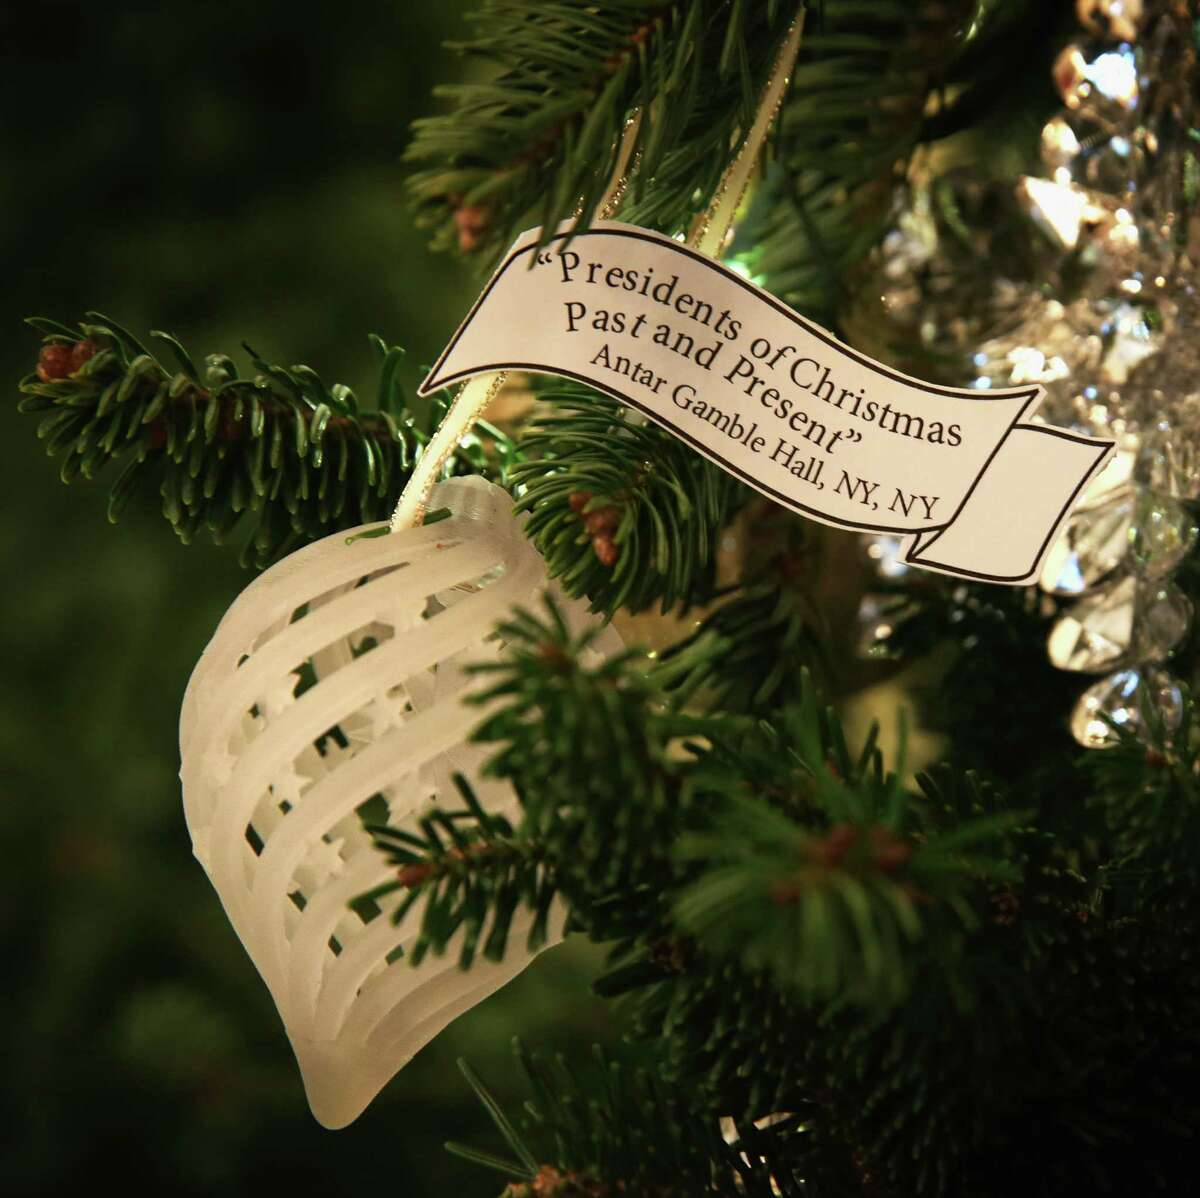 """WASHINGTON, DC - DECEMBER 03: A 3D printed ornament is hung on a Christmas tree in the Red Room of the White House December 3, 2014 in Washington, DC. The first lady hosted military families to the White House to first view this years holiday decorations which the theme is """"A Children's Winter Wonderland."""" (Photo by Alex Wong/Getty Images)"""